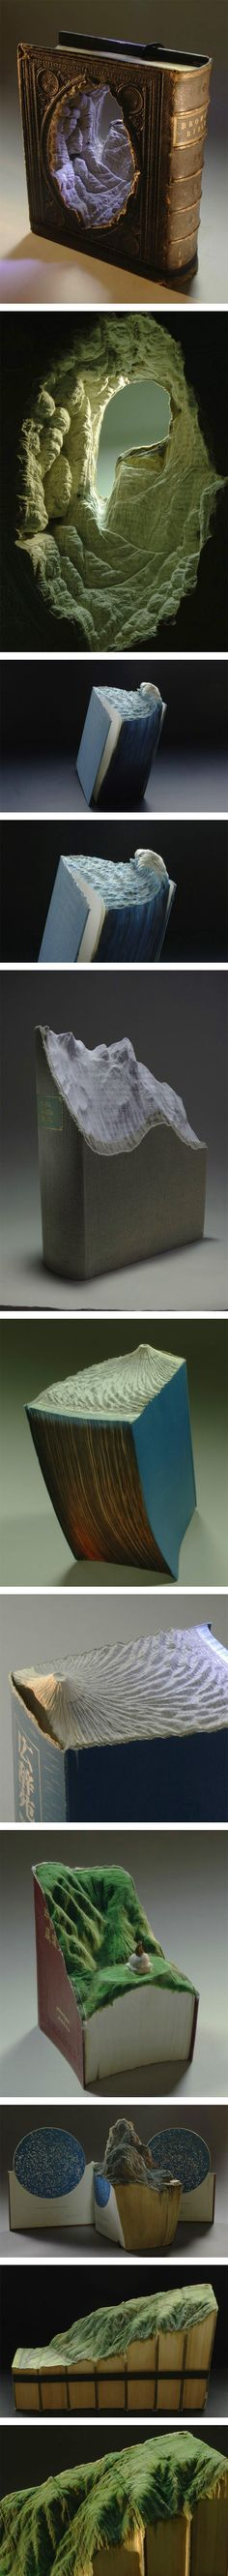 Funny pictures about Carved Book Landscapes. Oh, and cool pics about Carved Book Landscapes. Also, Carved Book Landscapes photos. Book Art, Origami, Creation Art, Book Sculpture, Art Sculptures, Art Plastique, Altered Books, Oeuvre D'art, Amazing Art